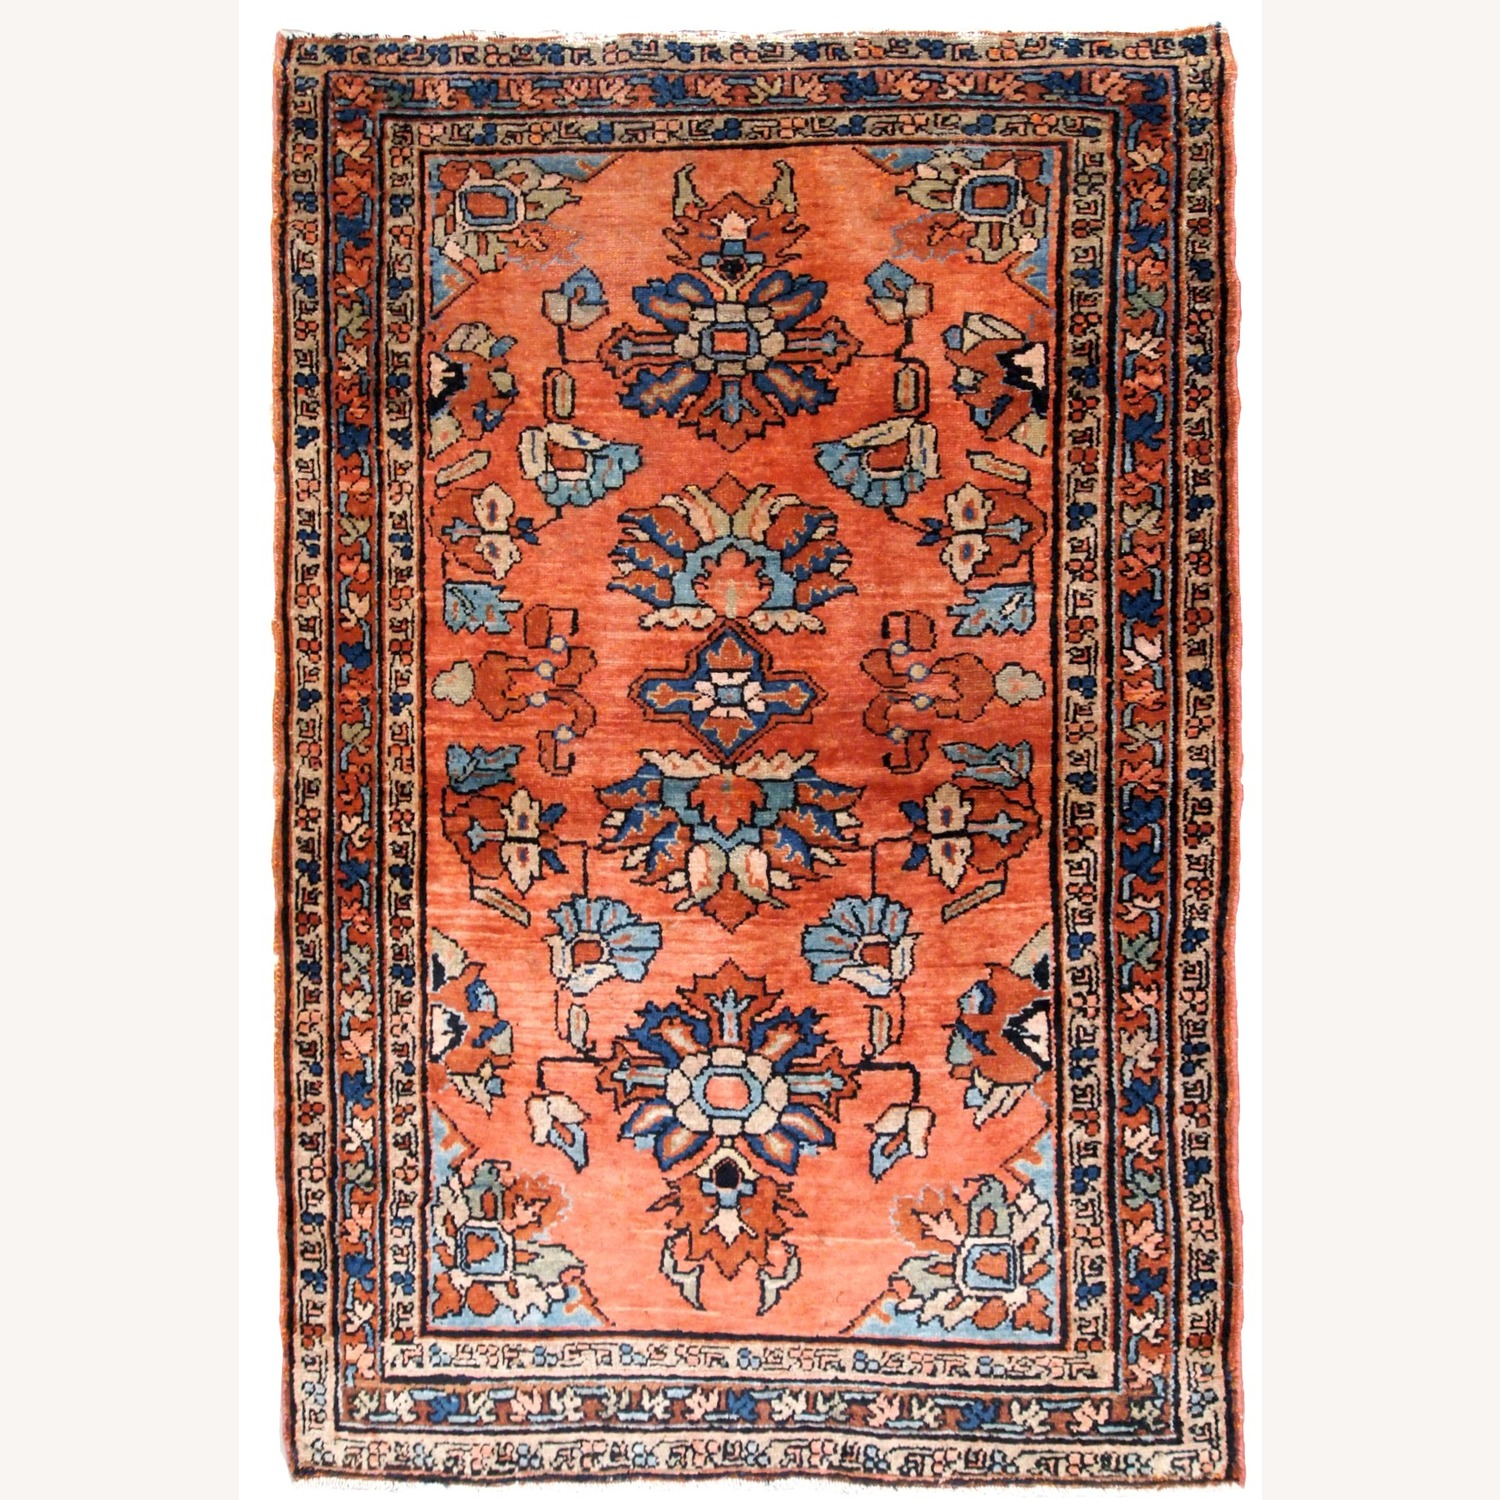 Handmade Antique Persian Lilihan Rug - image-1